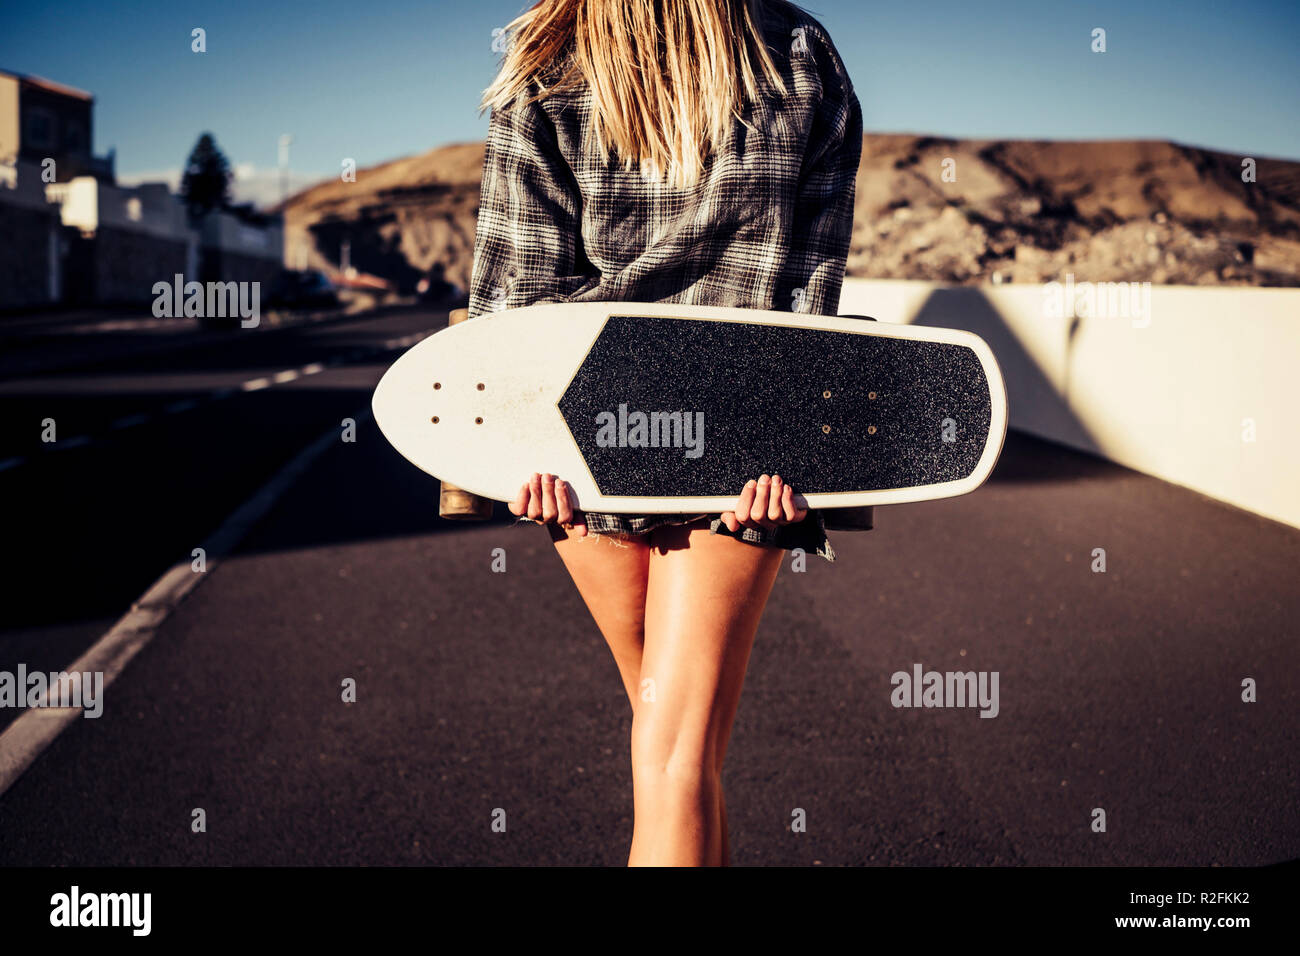 freedom and alternative lifestyle outdoor concept for beautiful blonde young woman walking on the street with skateboard and wind in the hair. enjoying life and day time. warm colors. - Stock Image